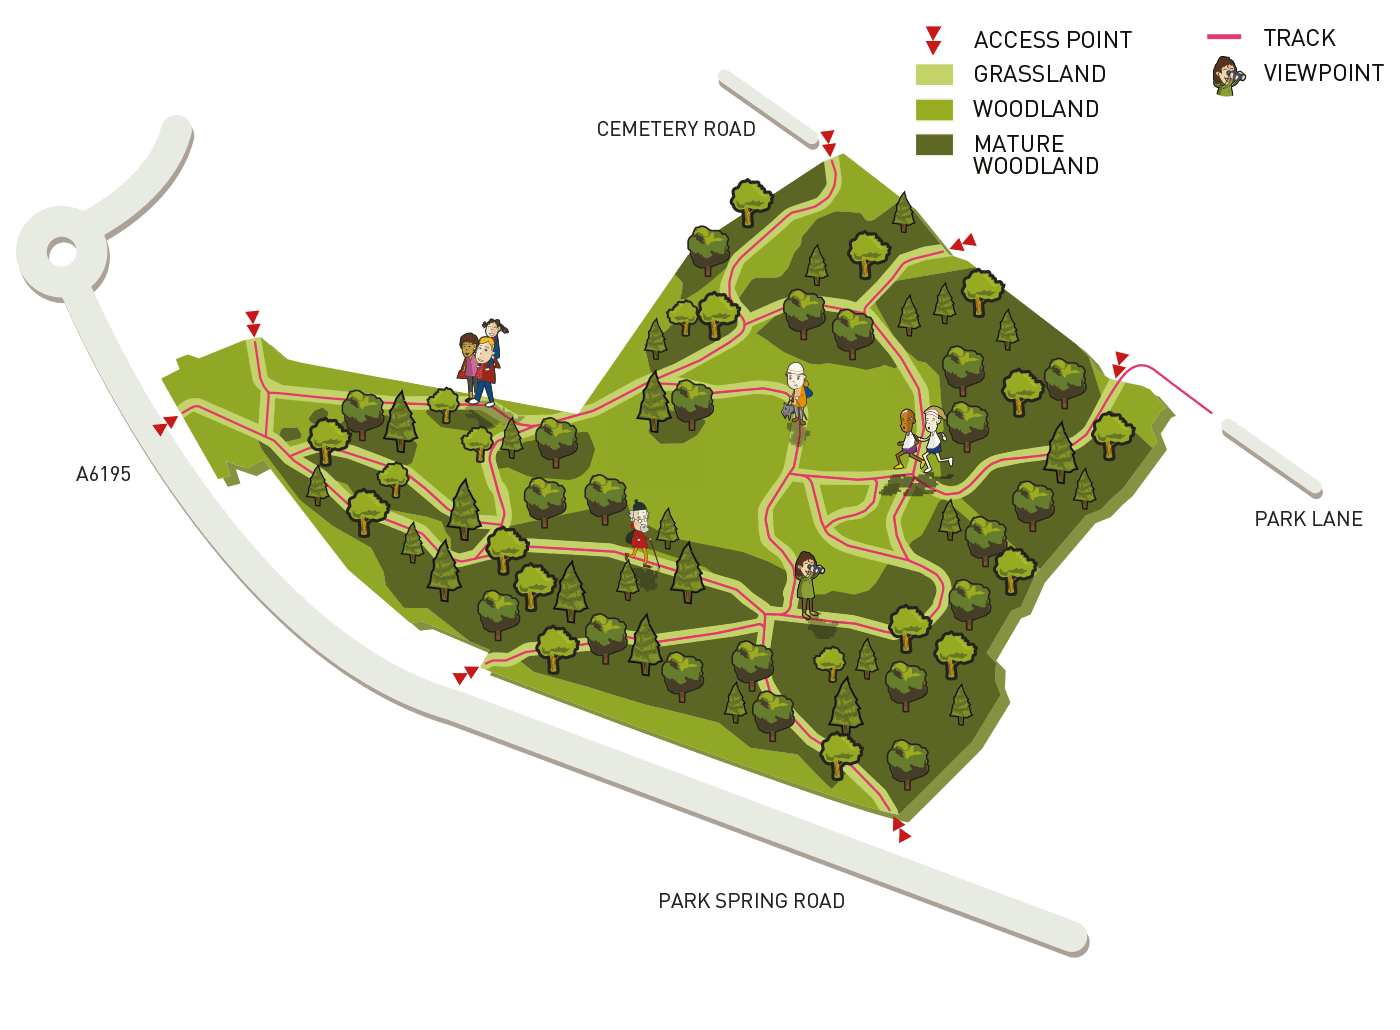 Map of New Park Springs